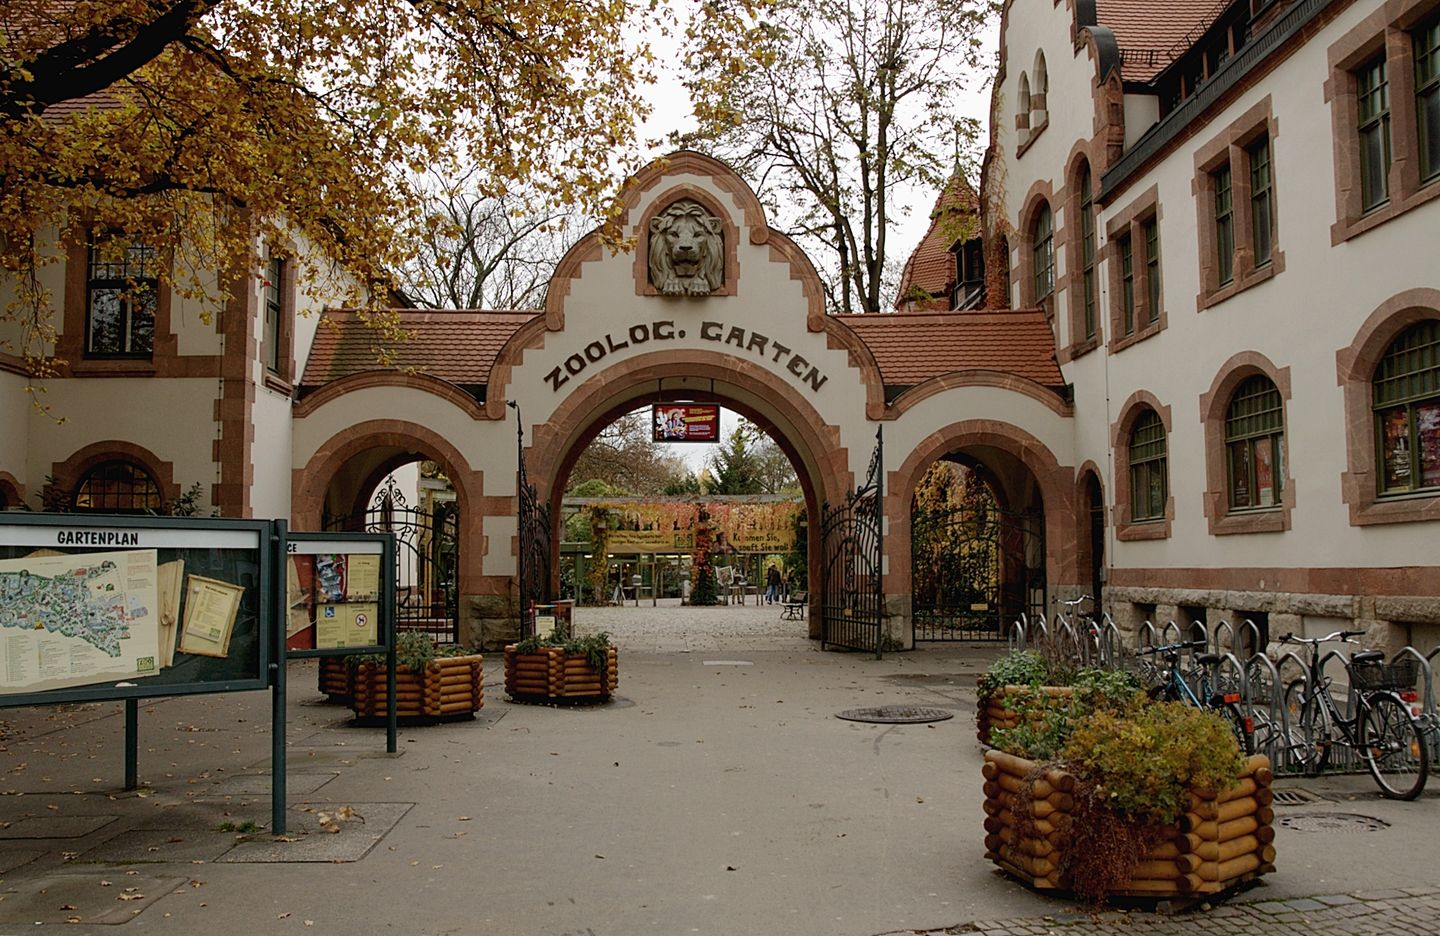 Entrance to Zoo Leipzig